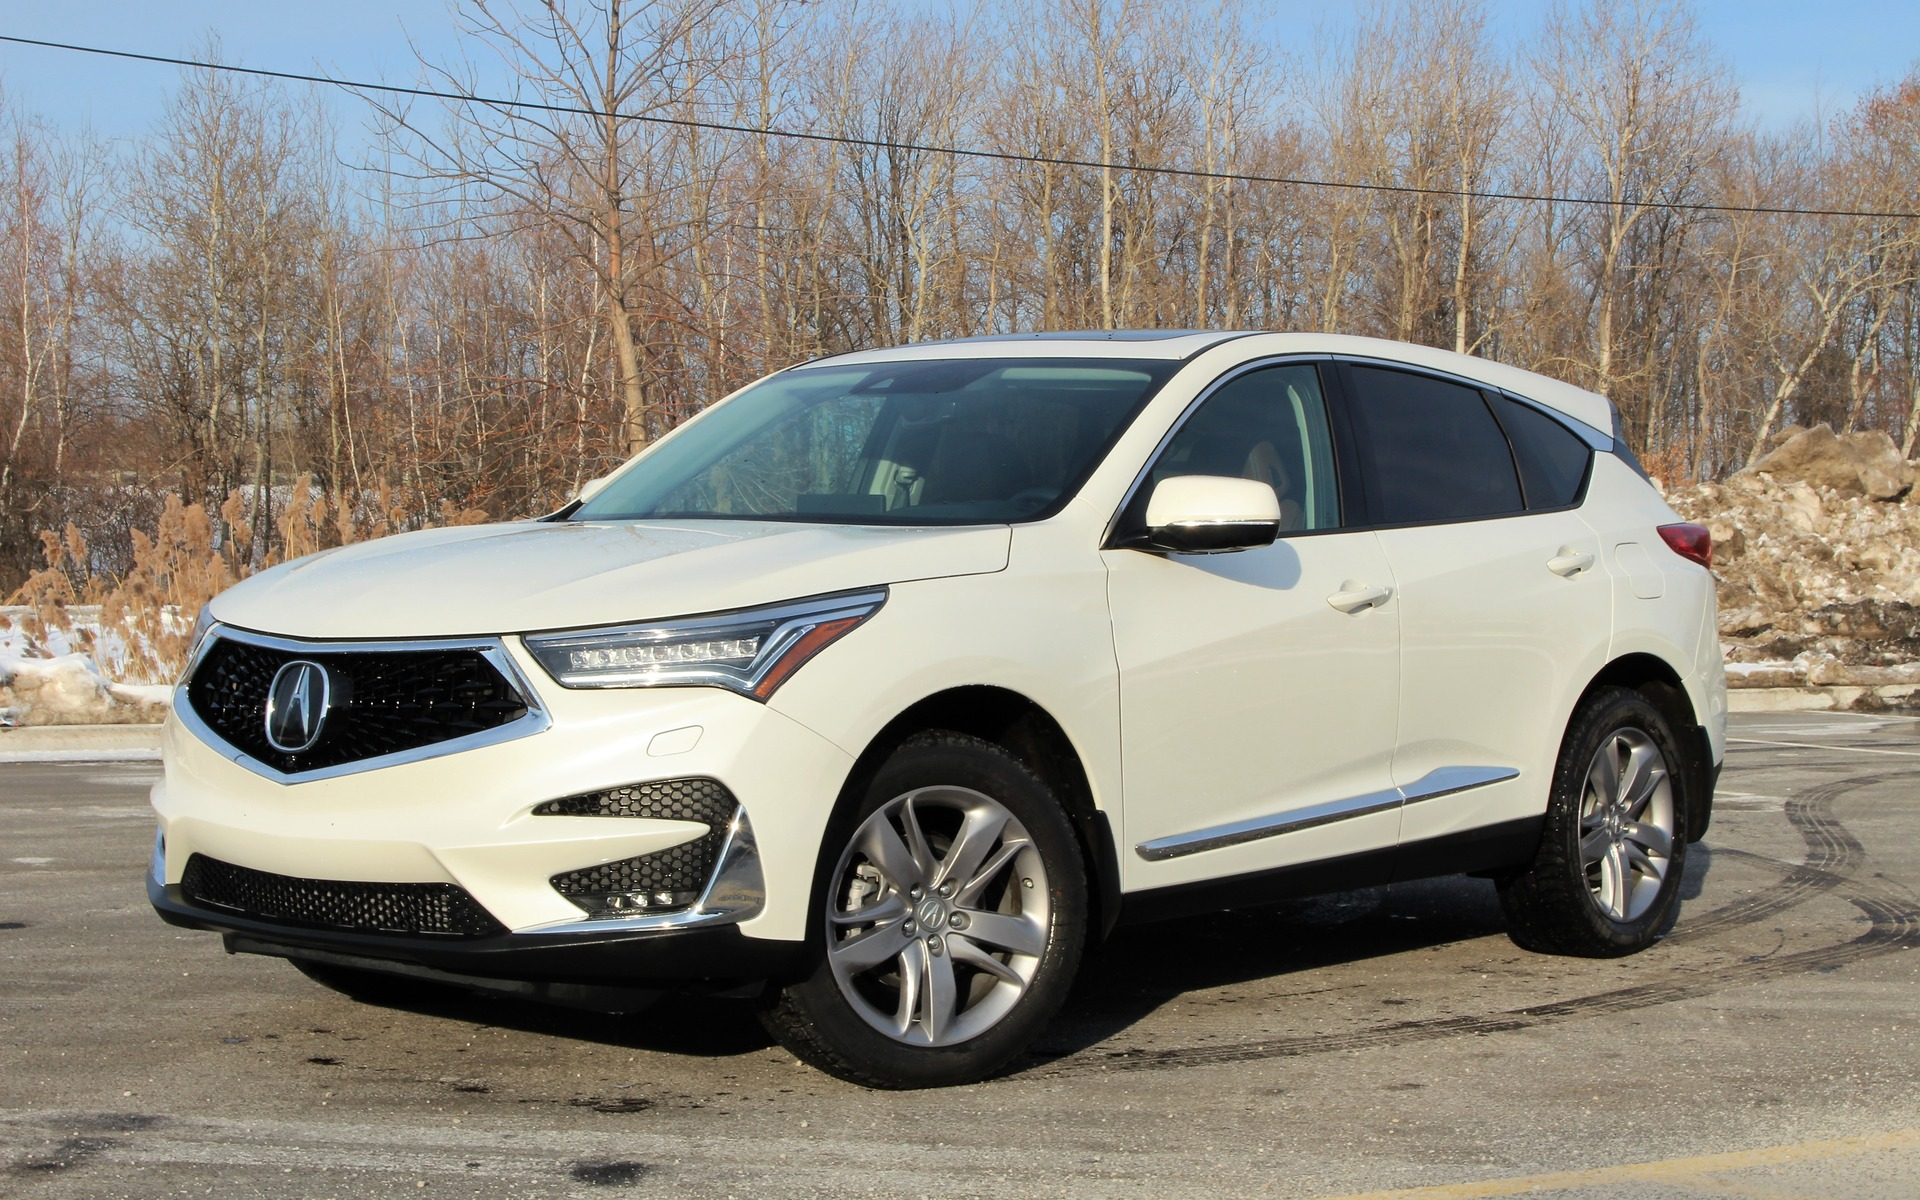 2019 Acura Rdx Just In Time The Car Guide